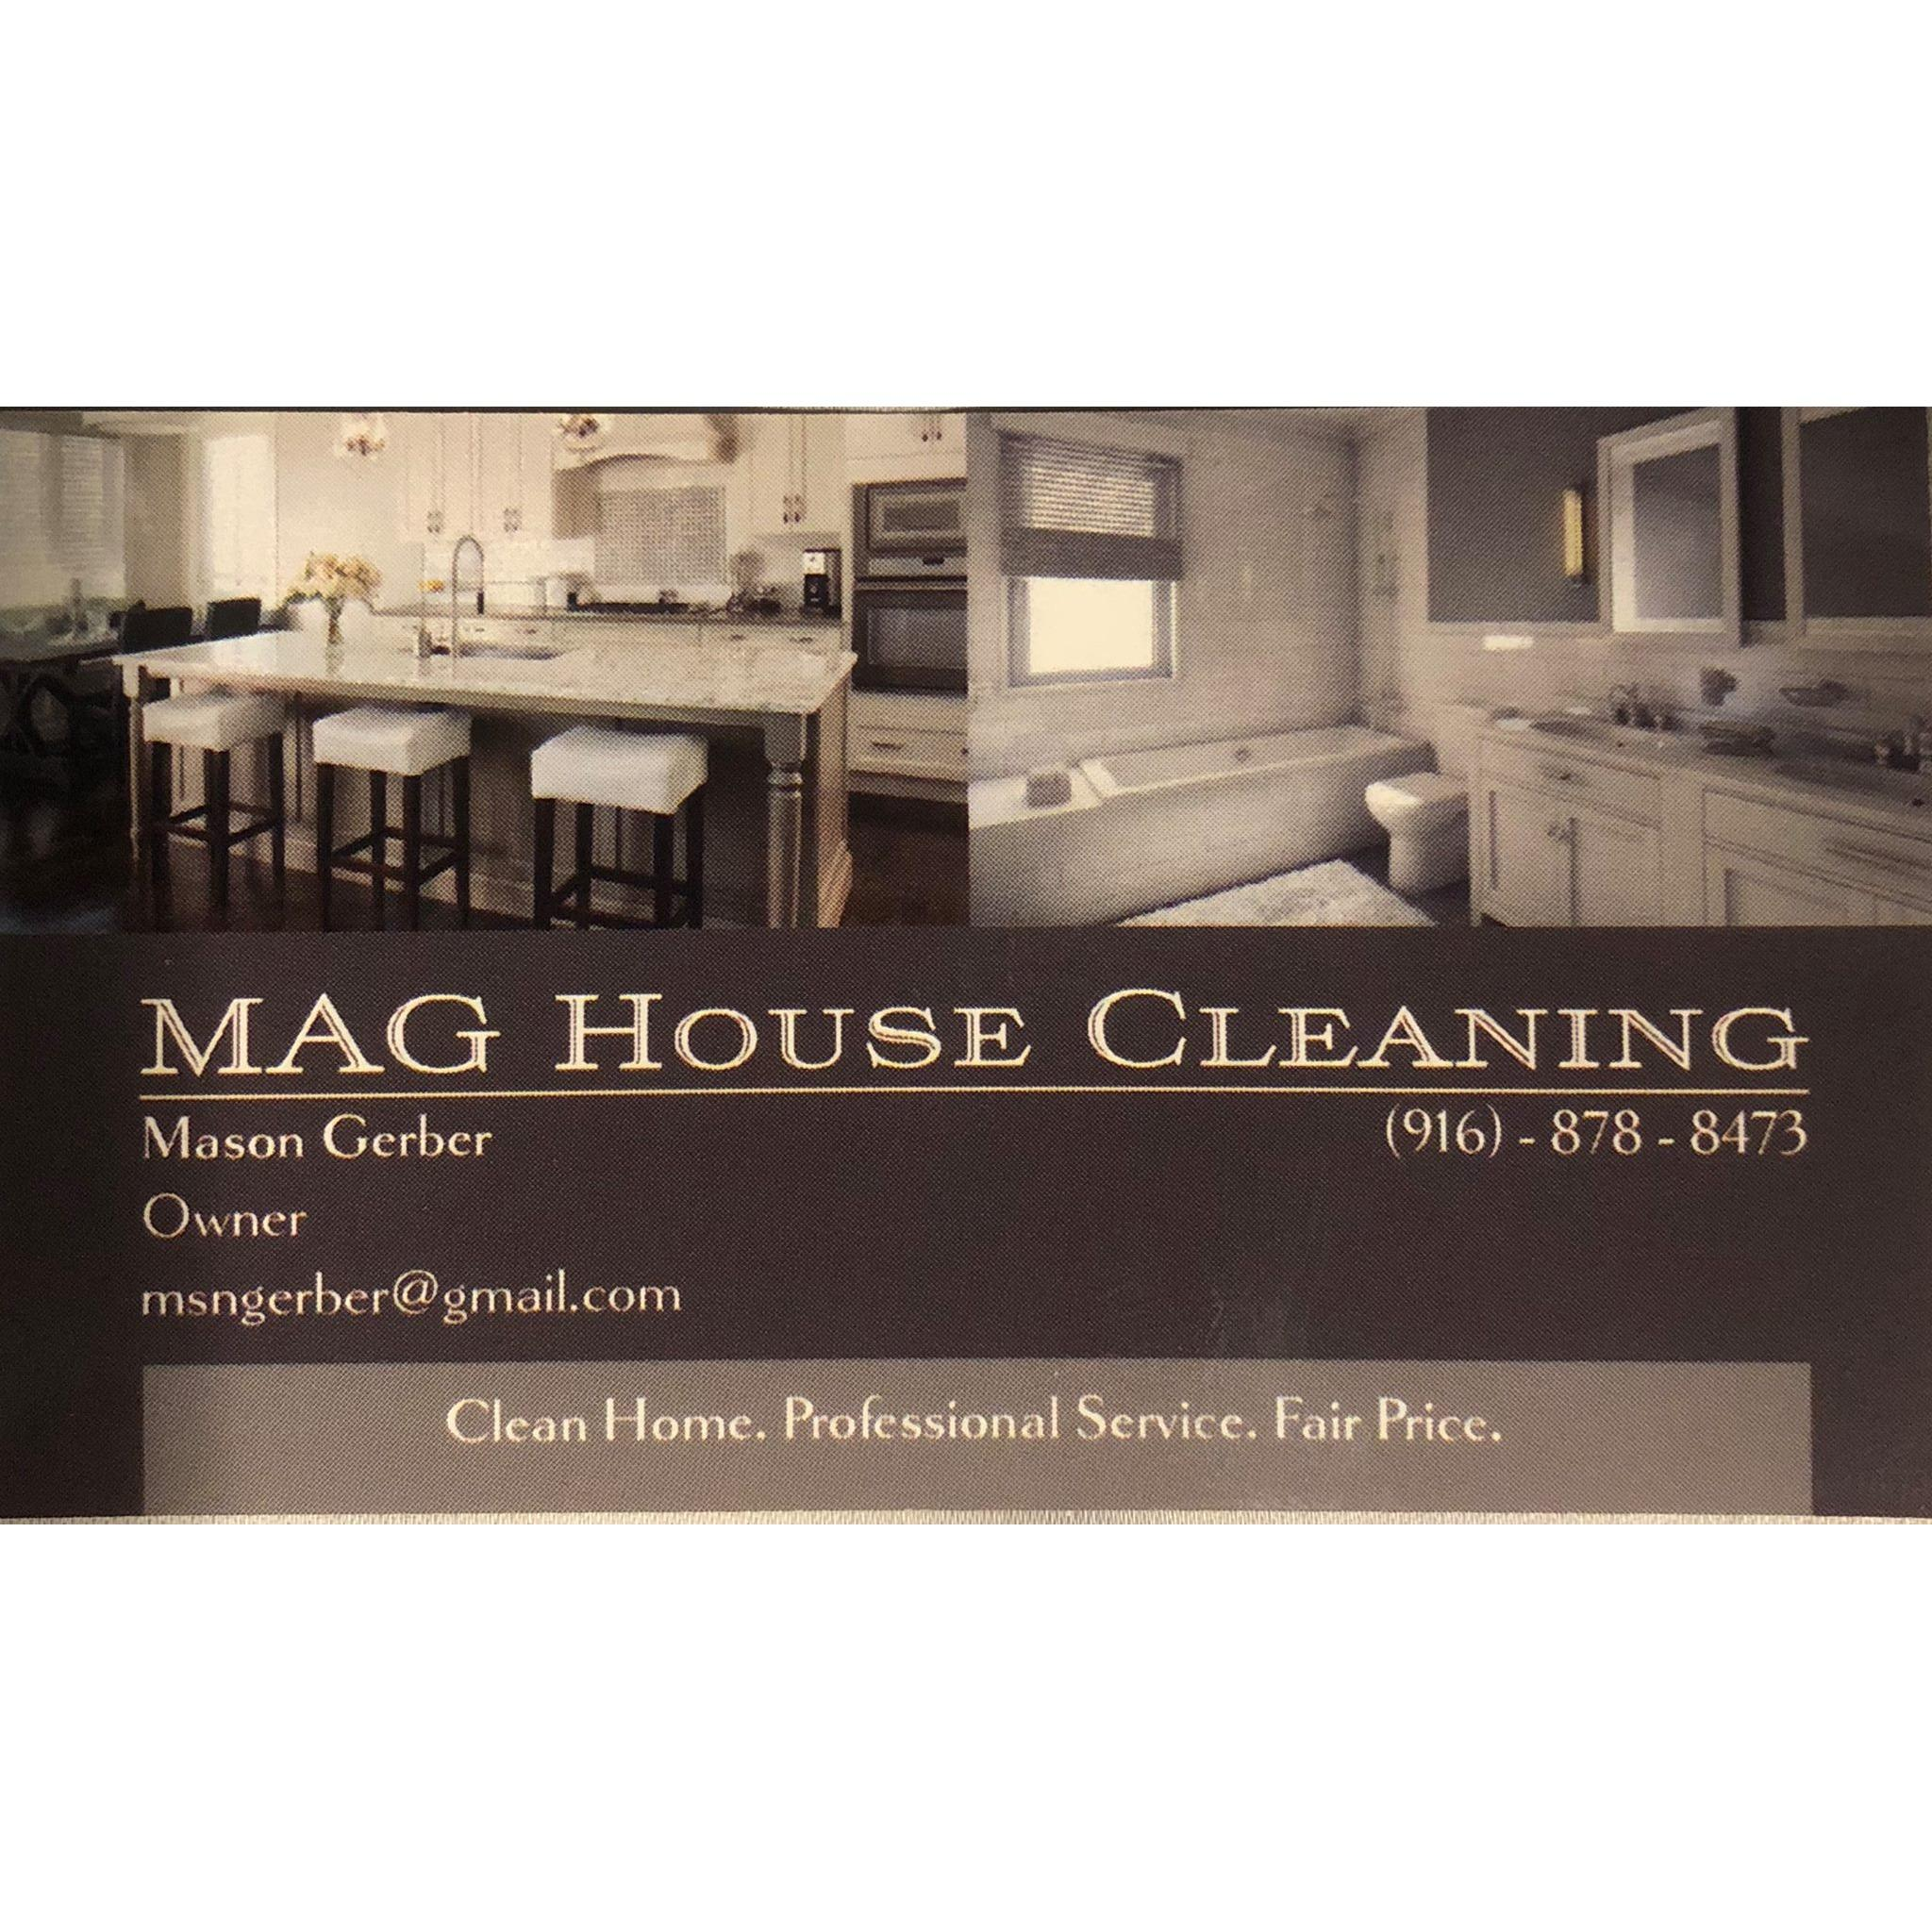 MAG House Cleaning